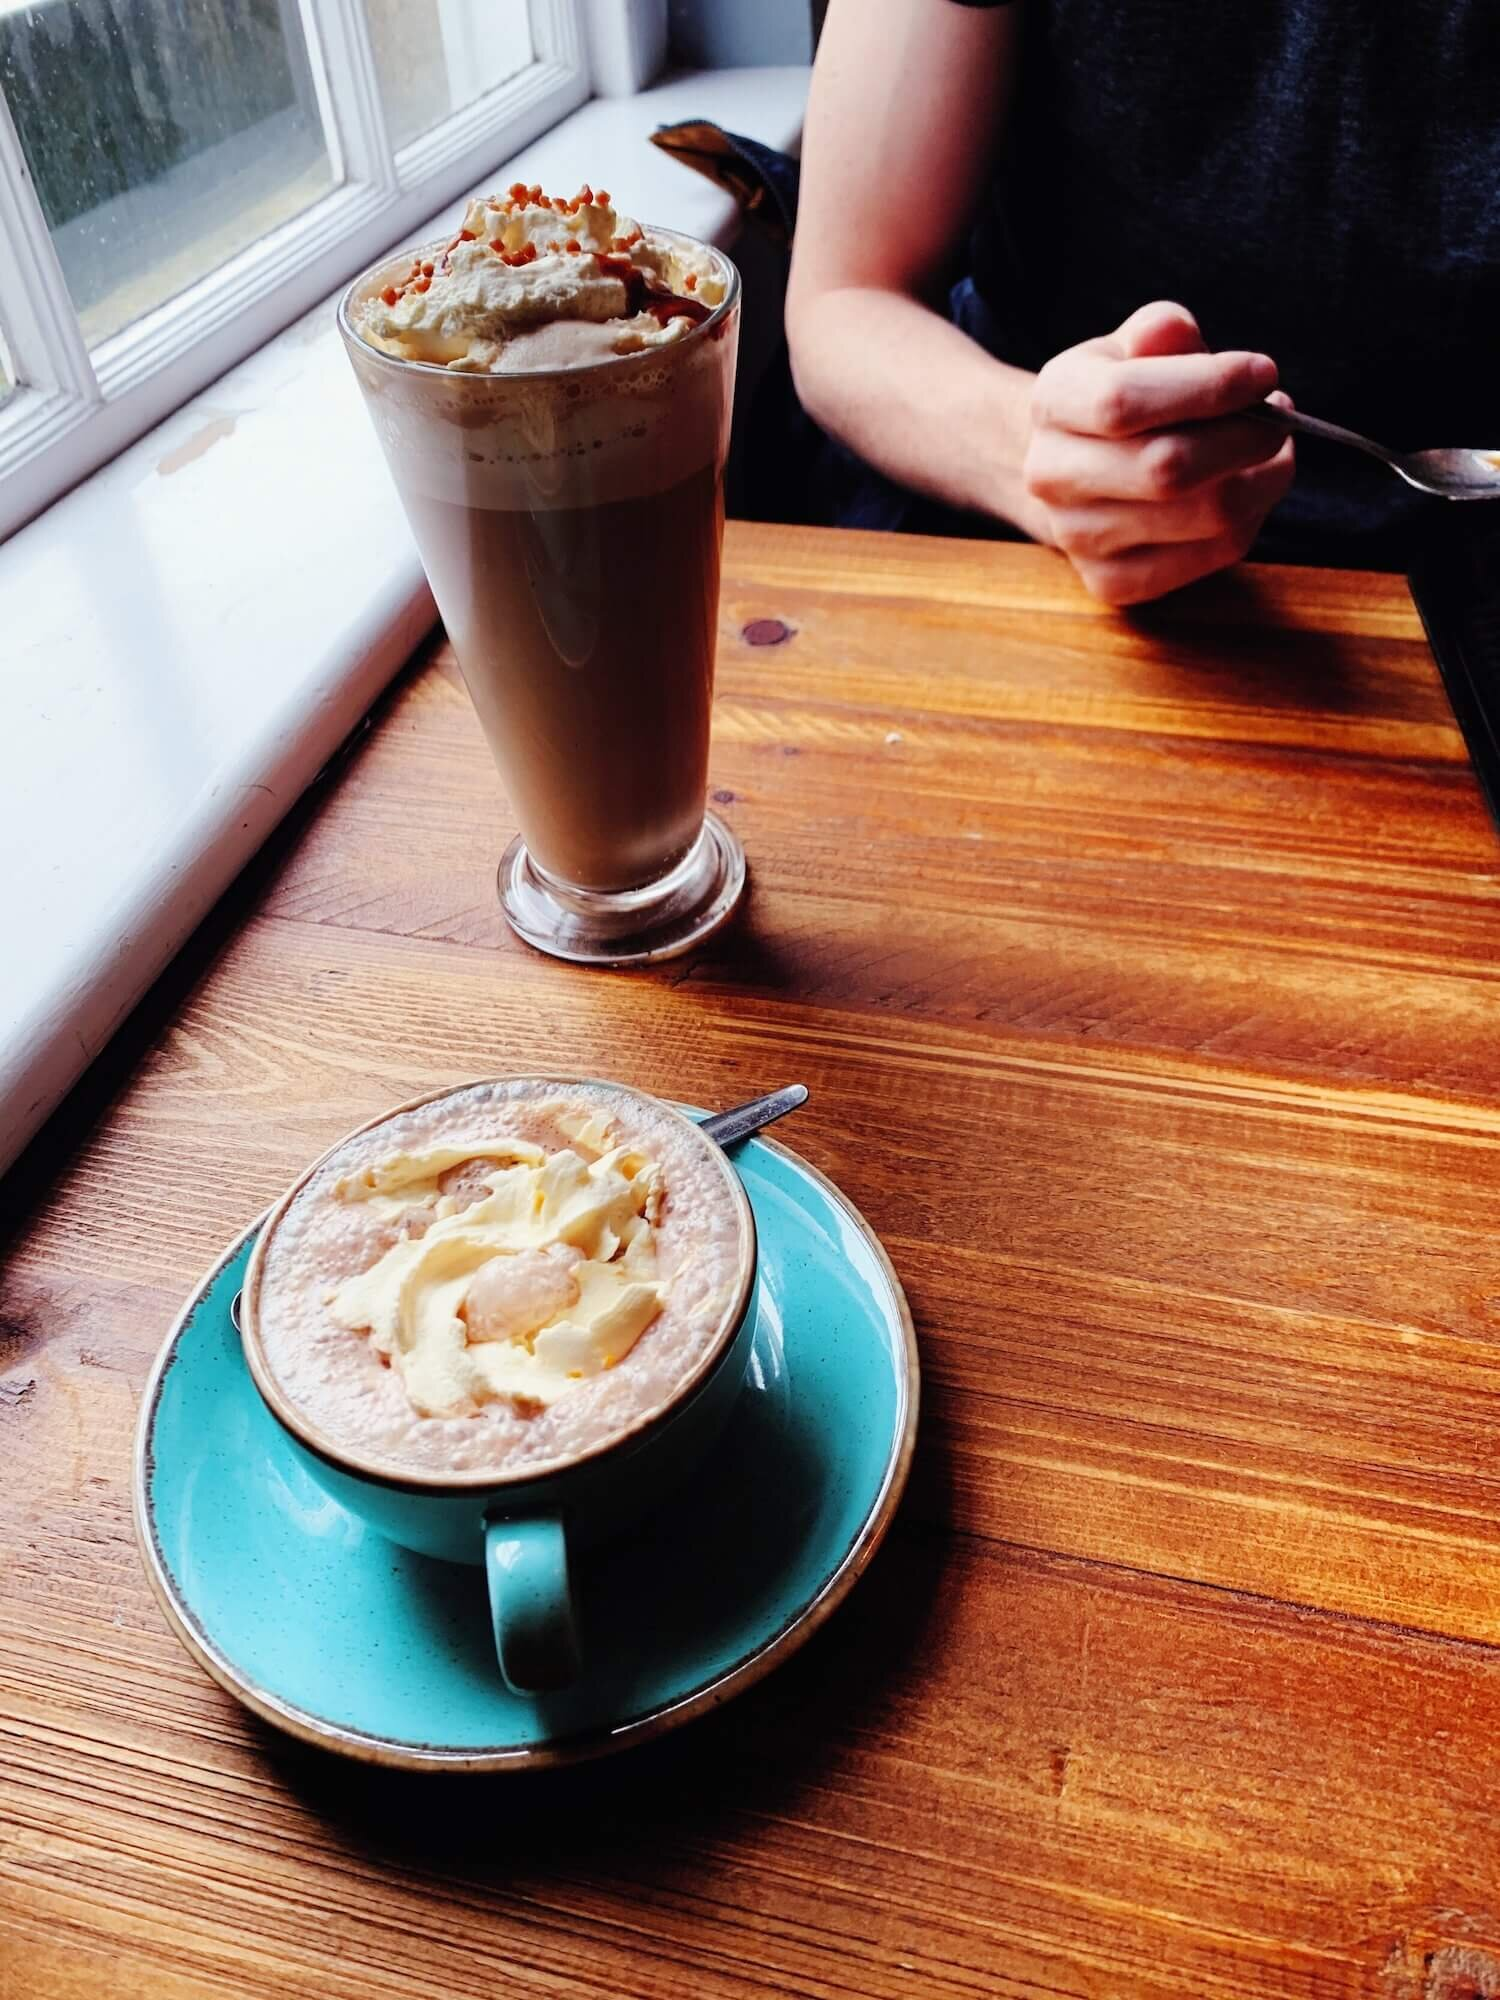 This was our second coffeeshop of the day — I forced us to duck inside when the rain got a little too cold and heavy. He had some latte/caramel/sugar contraption and I had a hot coco with vegan whipped cream. It was delightful.